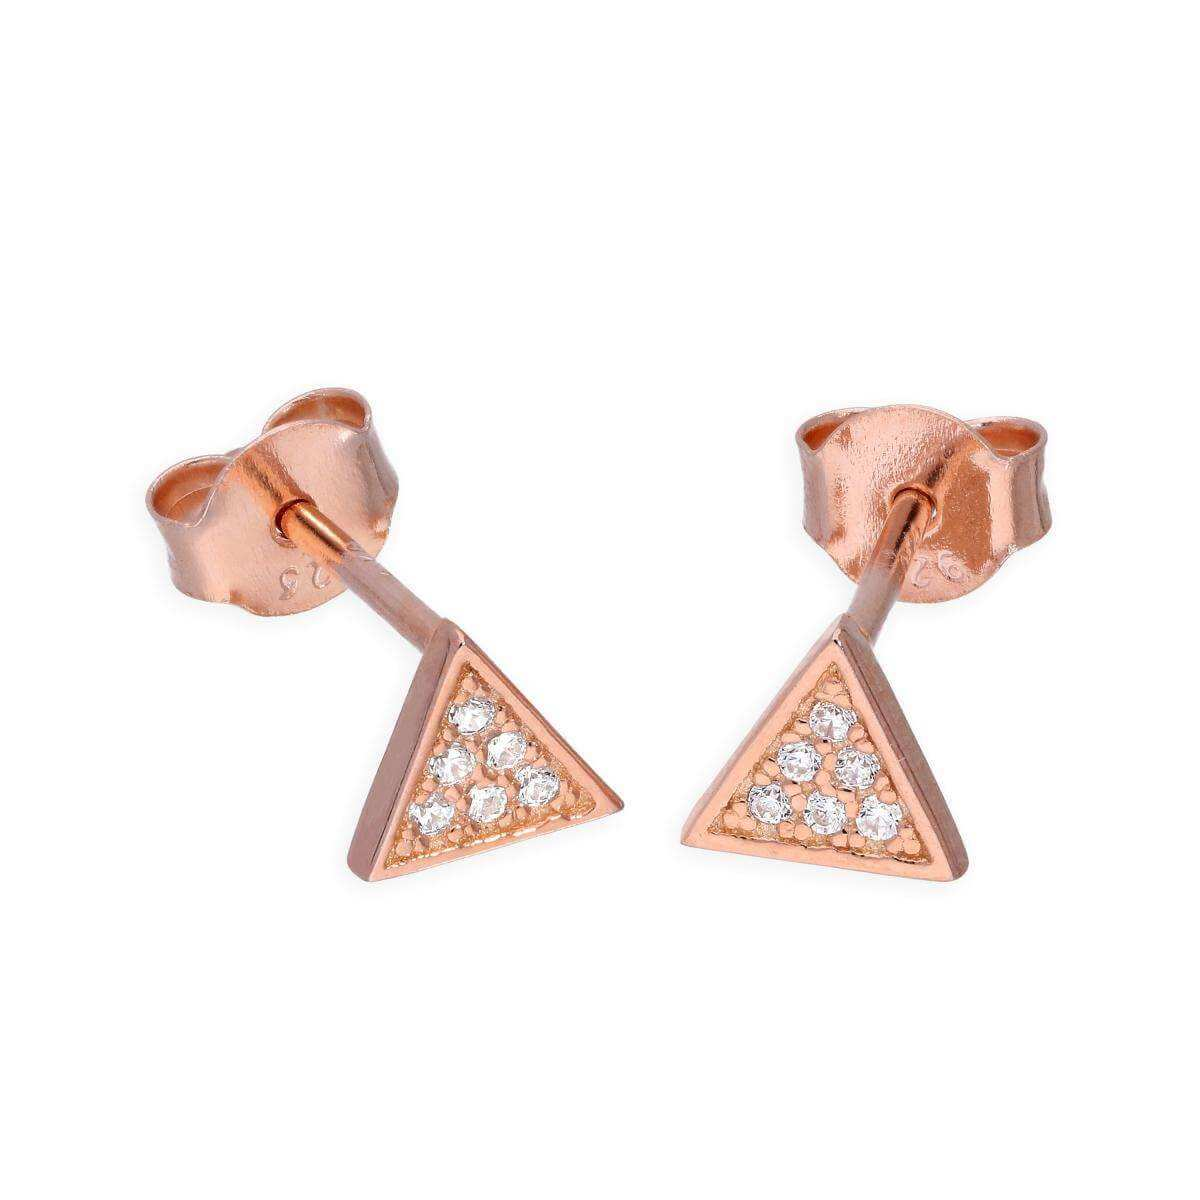 Rose Gold Plated Sterling Silver & Clear CZ Crystal Triangle Stud Earrings